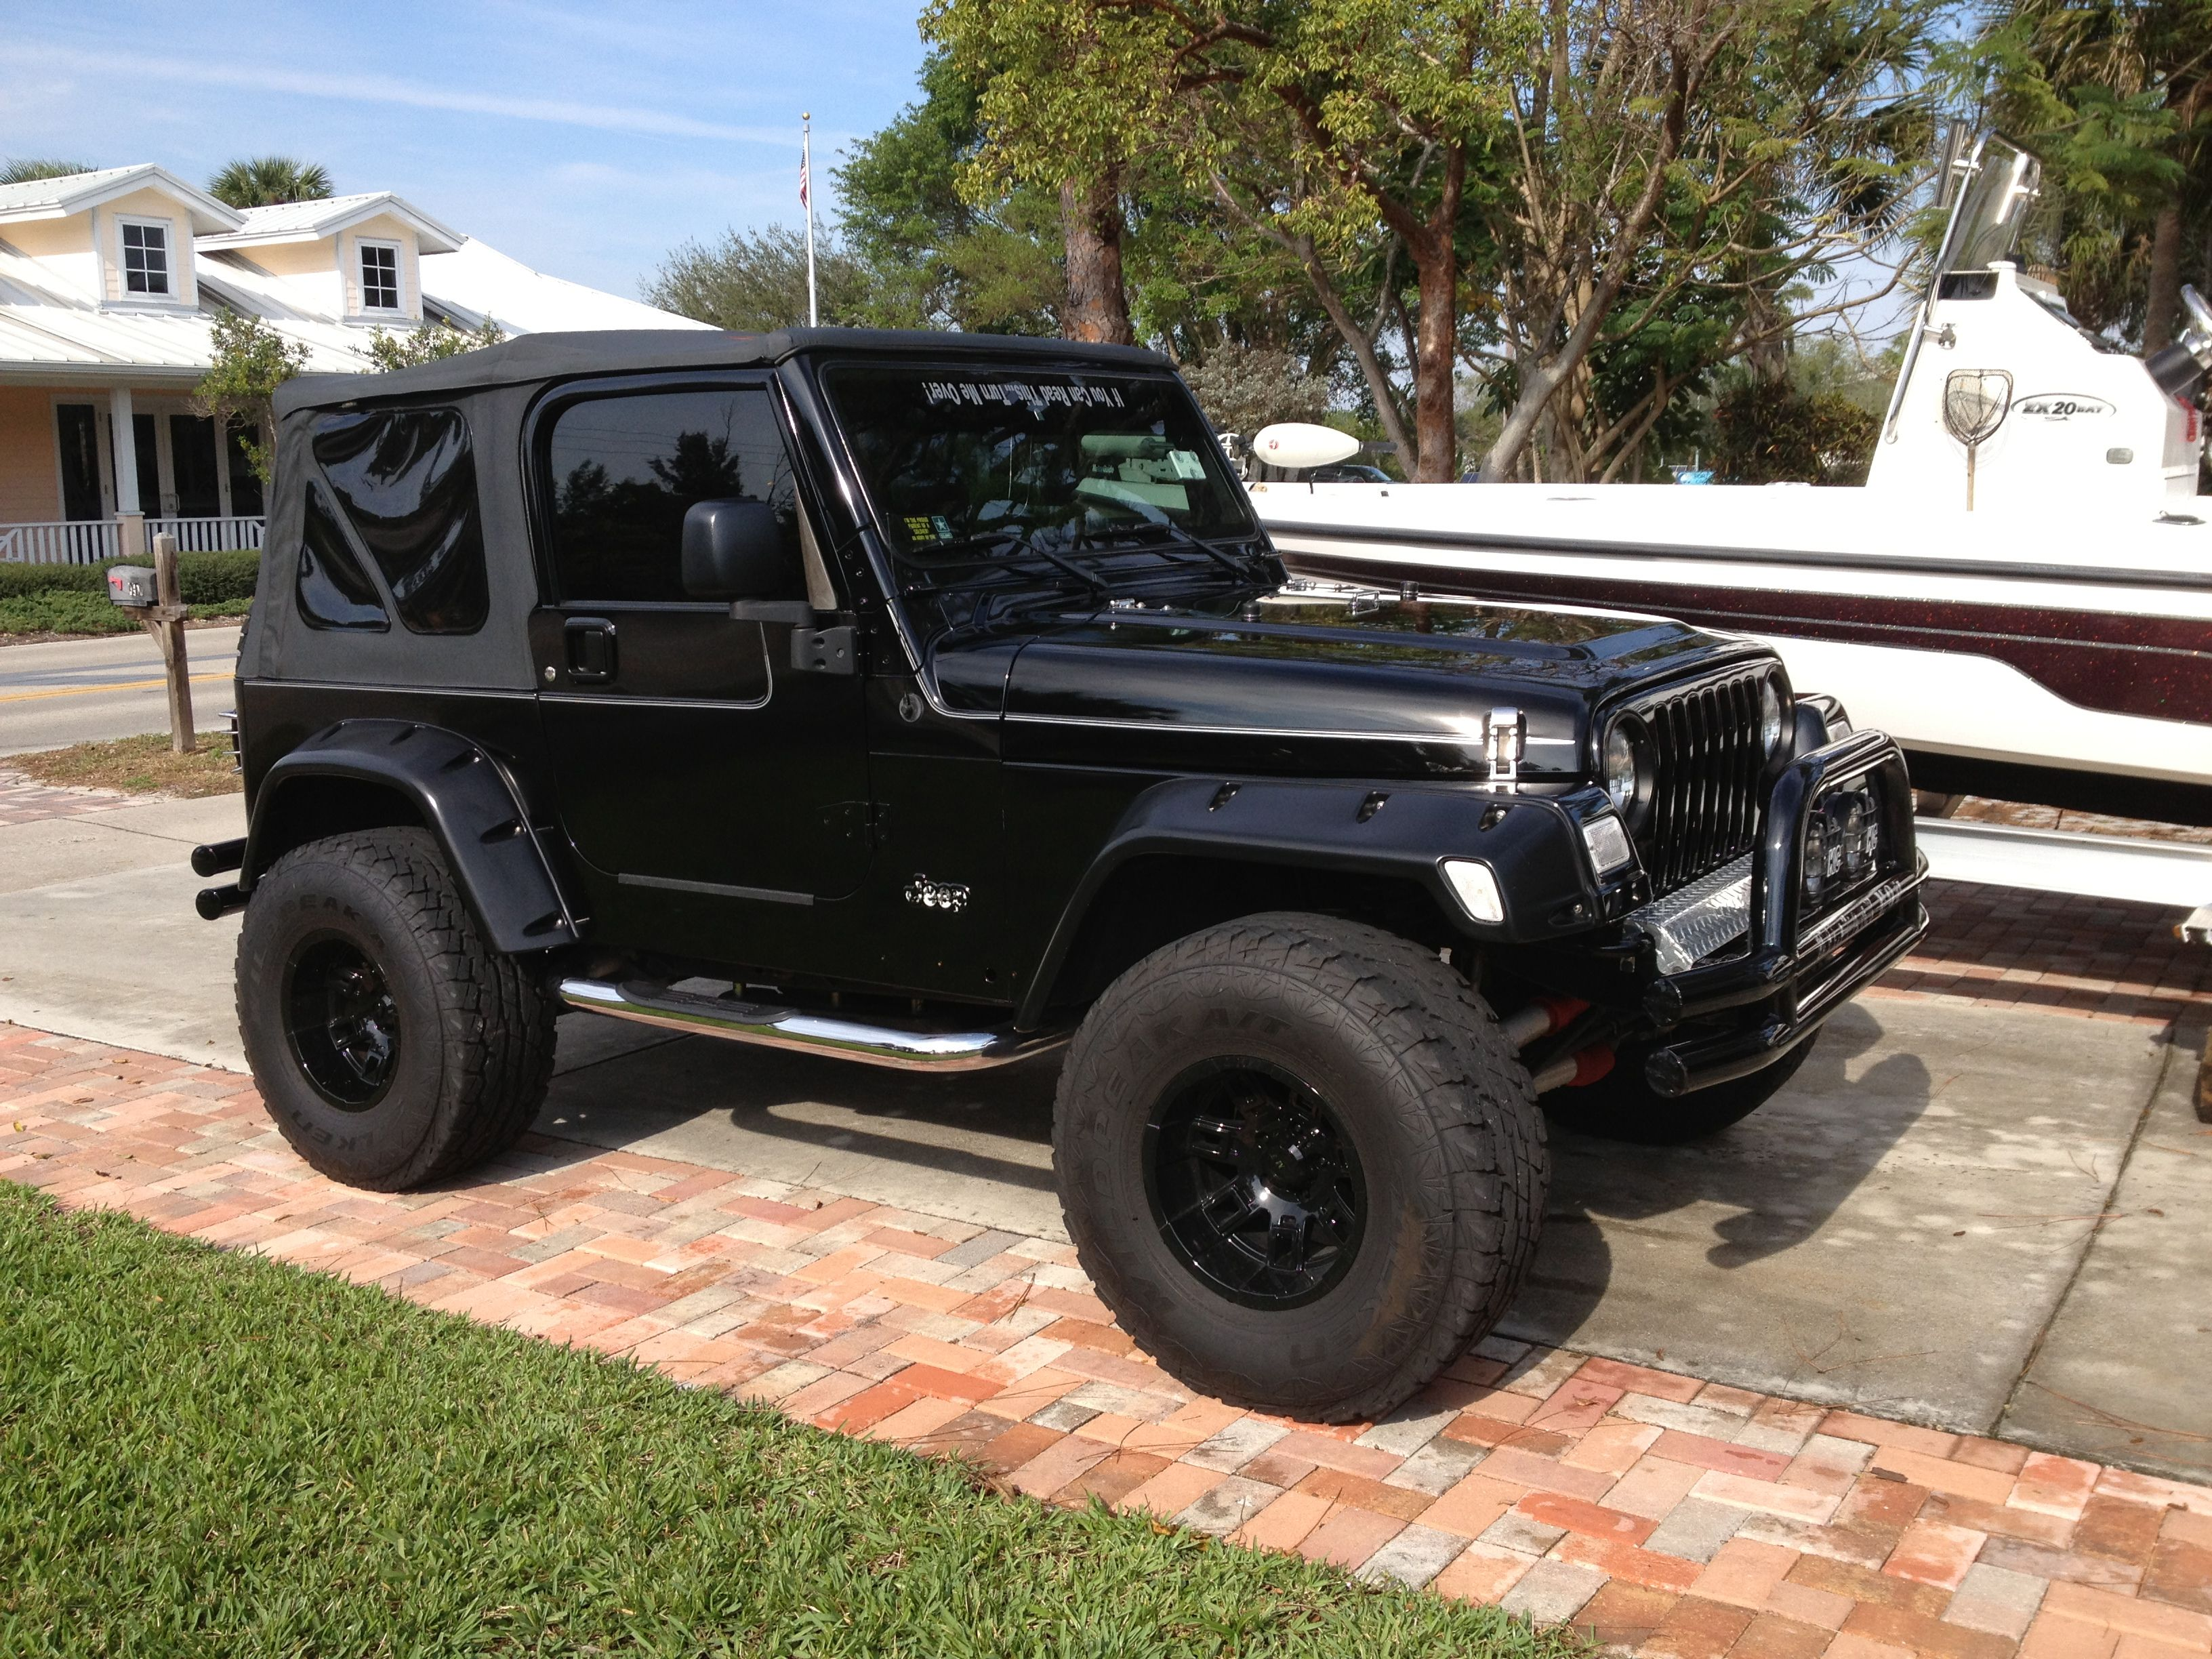 2005 jeep wrangler in old bethpage, ny | jeeps | pinterest | 2005